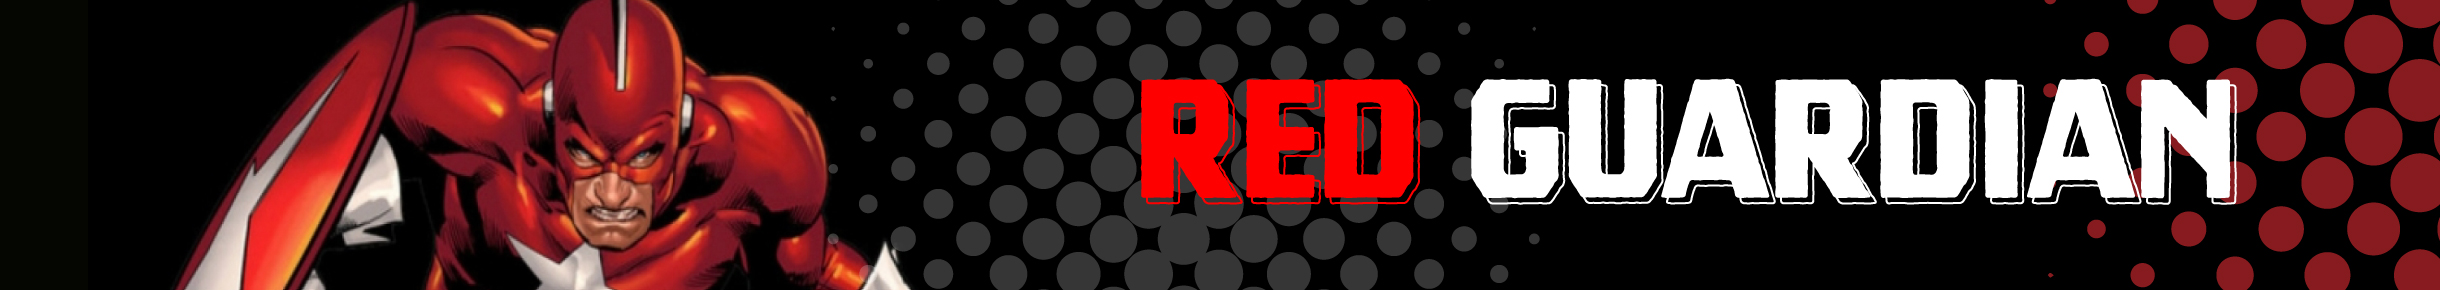 Red Guardian Merchandise Banner